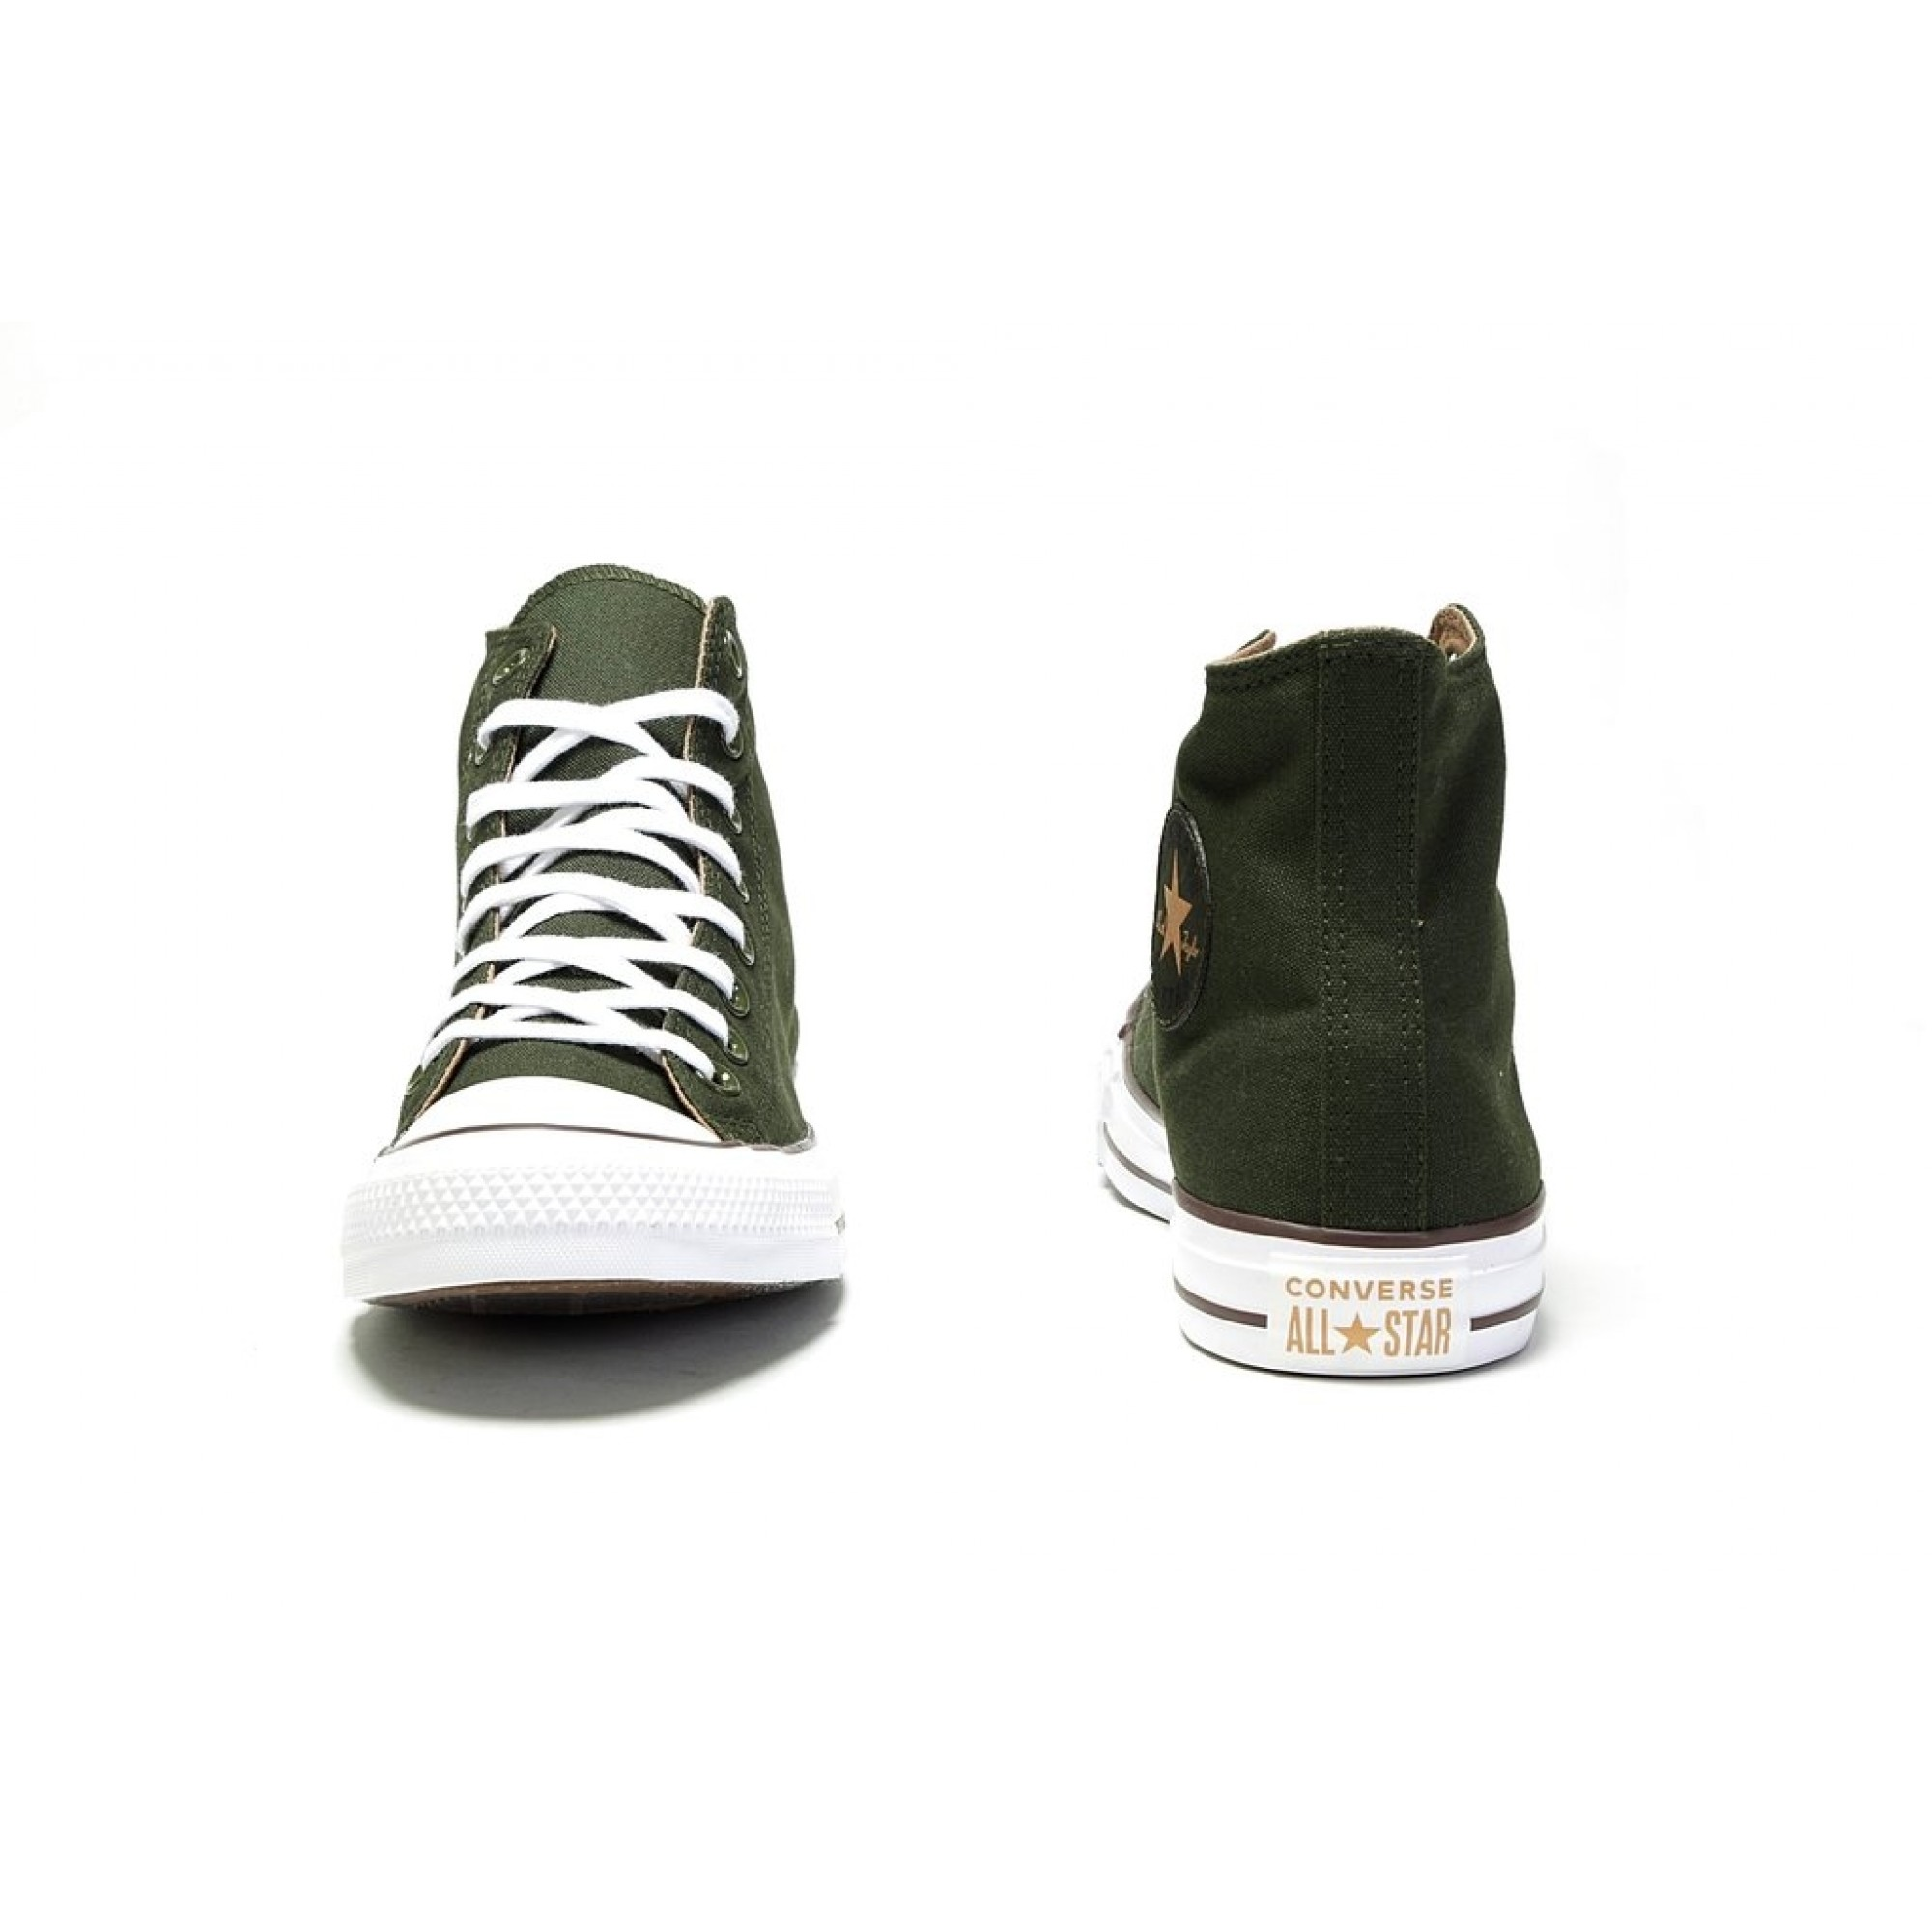 3f7579cc9a6504 Venue Store CONVERSE Chuck Taylor All Star Hi Shoe - Utility Green Teak White  Free Delivery Over  100